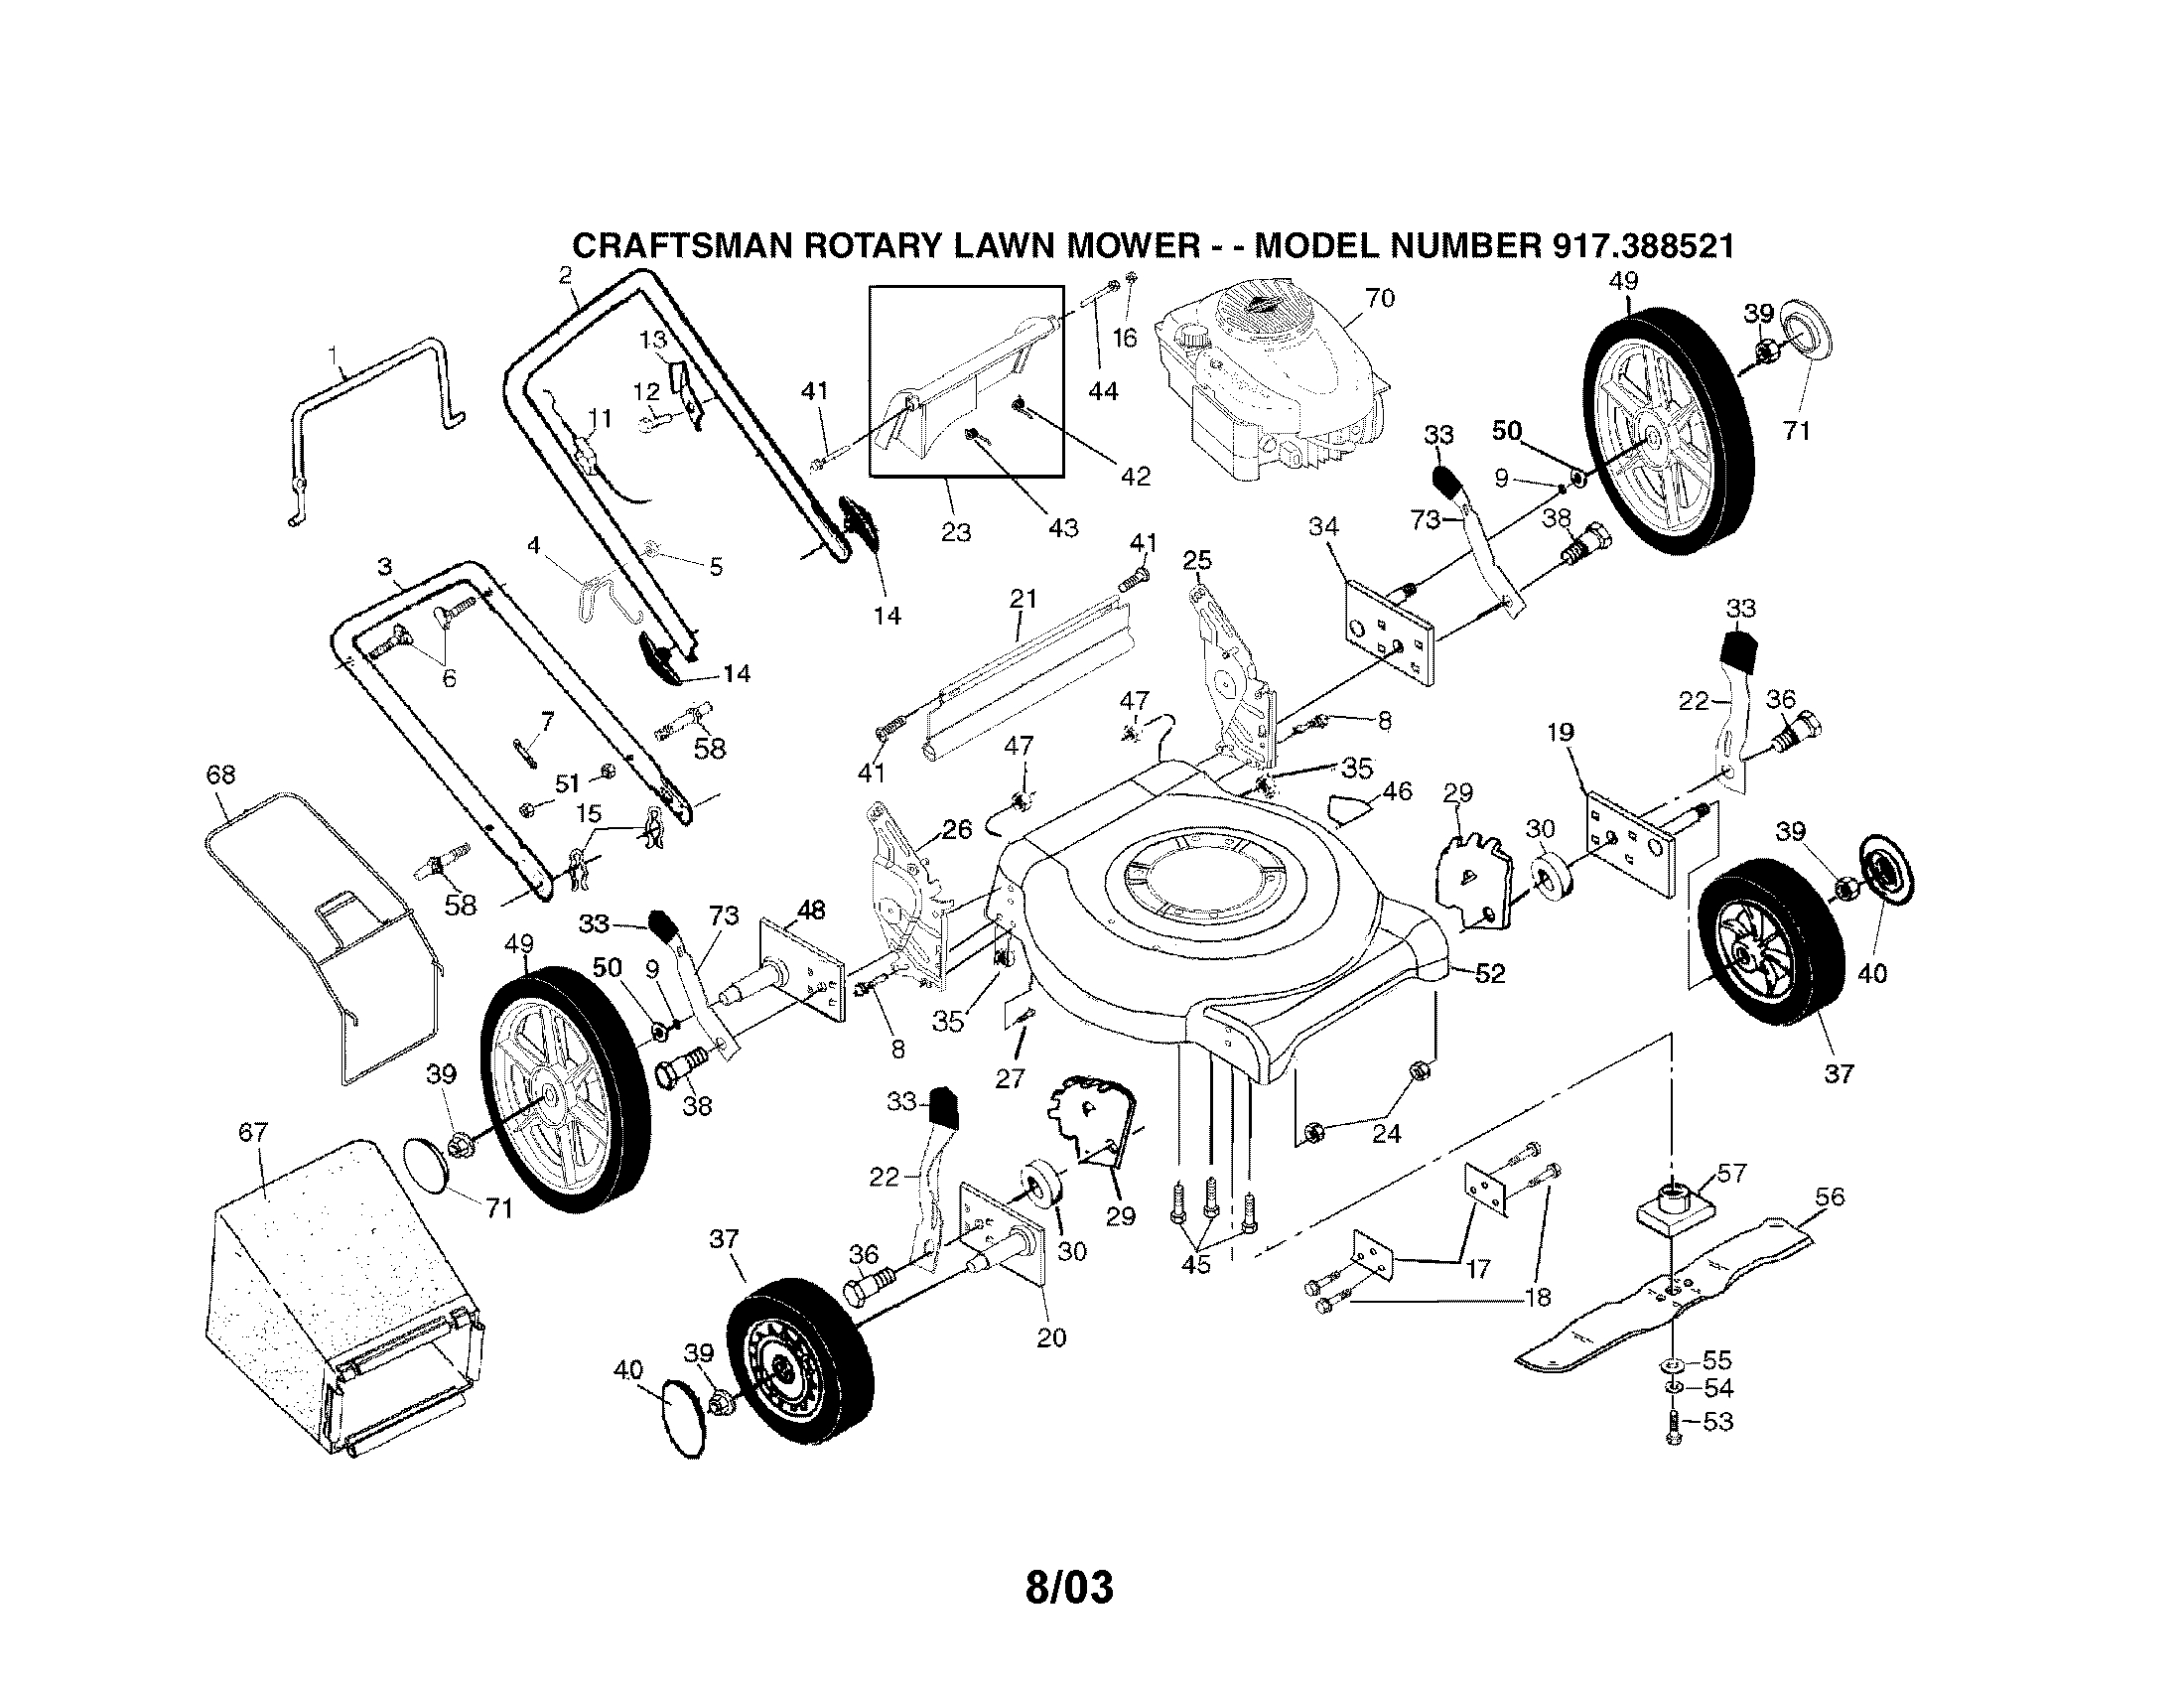 2015 Audi S5 Wiring Diagram in addition 544794886152916115 likewise Tcs Wiring Diagram in addition Cars besides 2014 Ford Focus Serpentine Belt Diagram. on integra auto to manual wiring